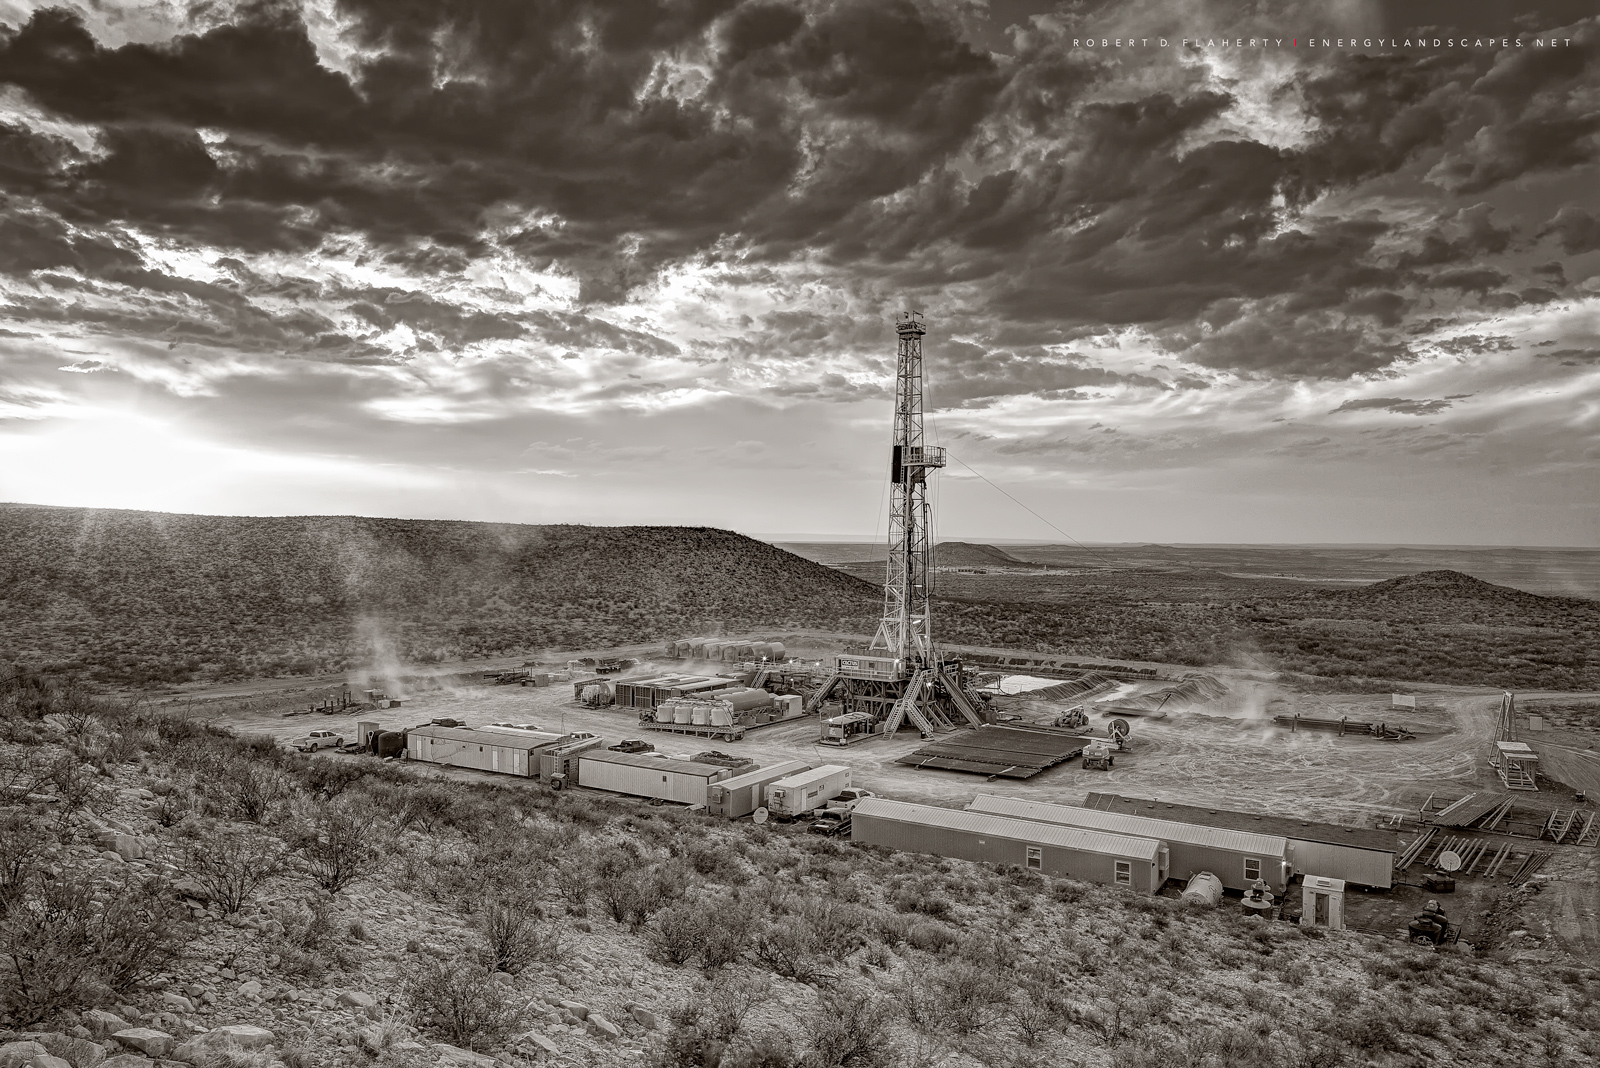 Delaware Basin, Permian Basin, West Texas, Mountain, drilling rig, Wind, sepia, black and white, black & white, photo